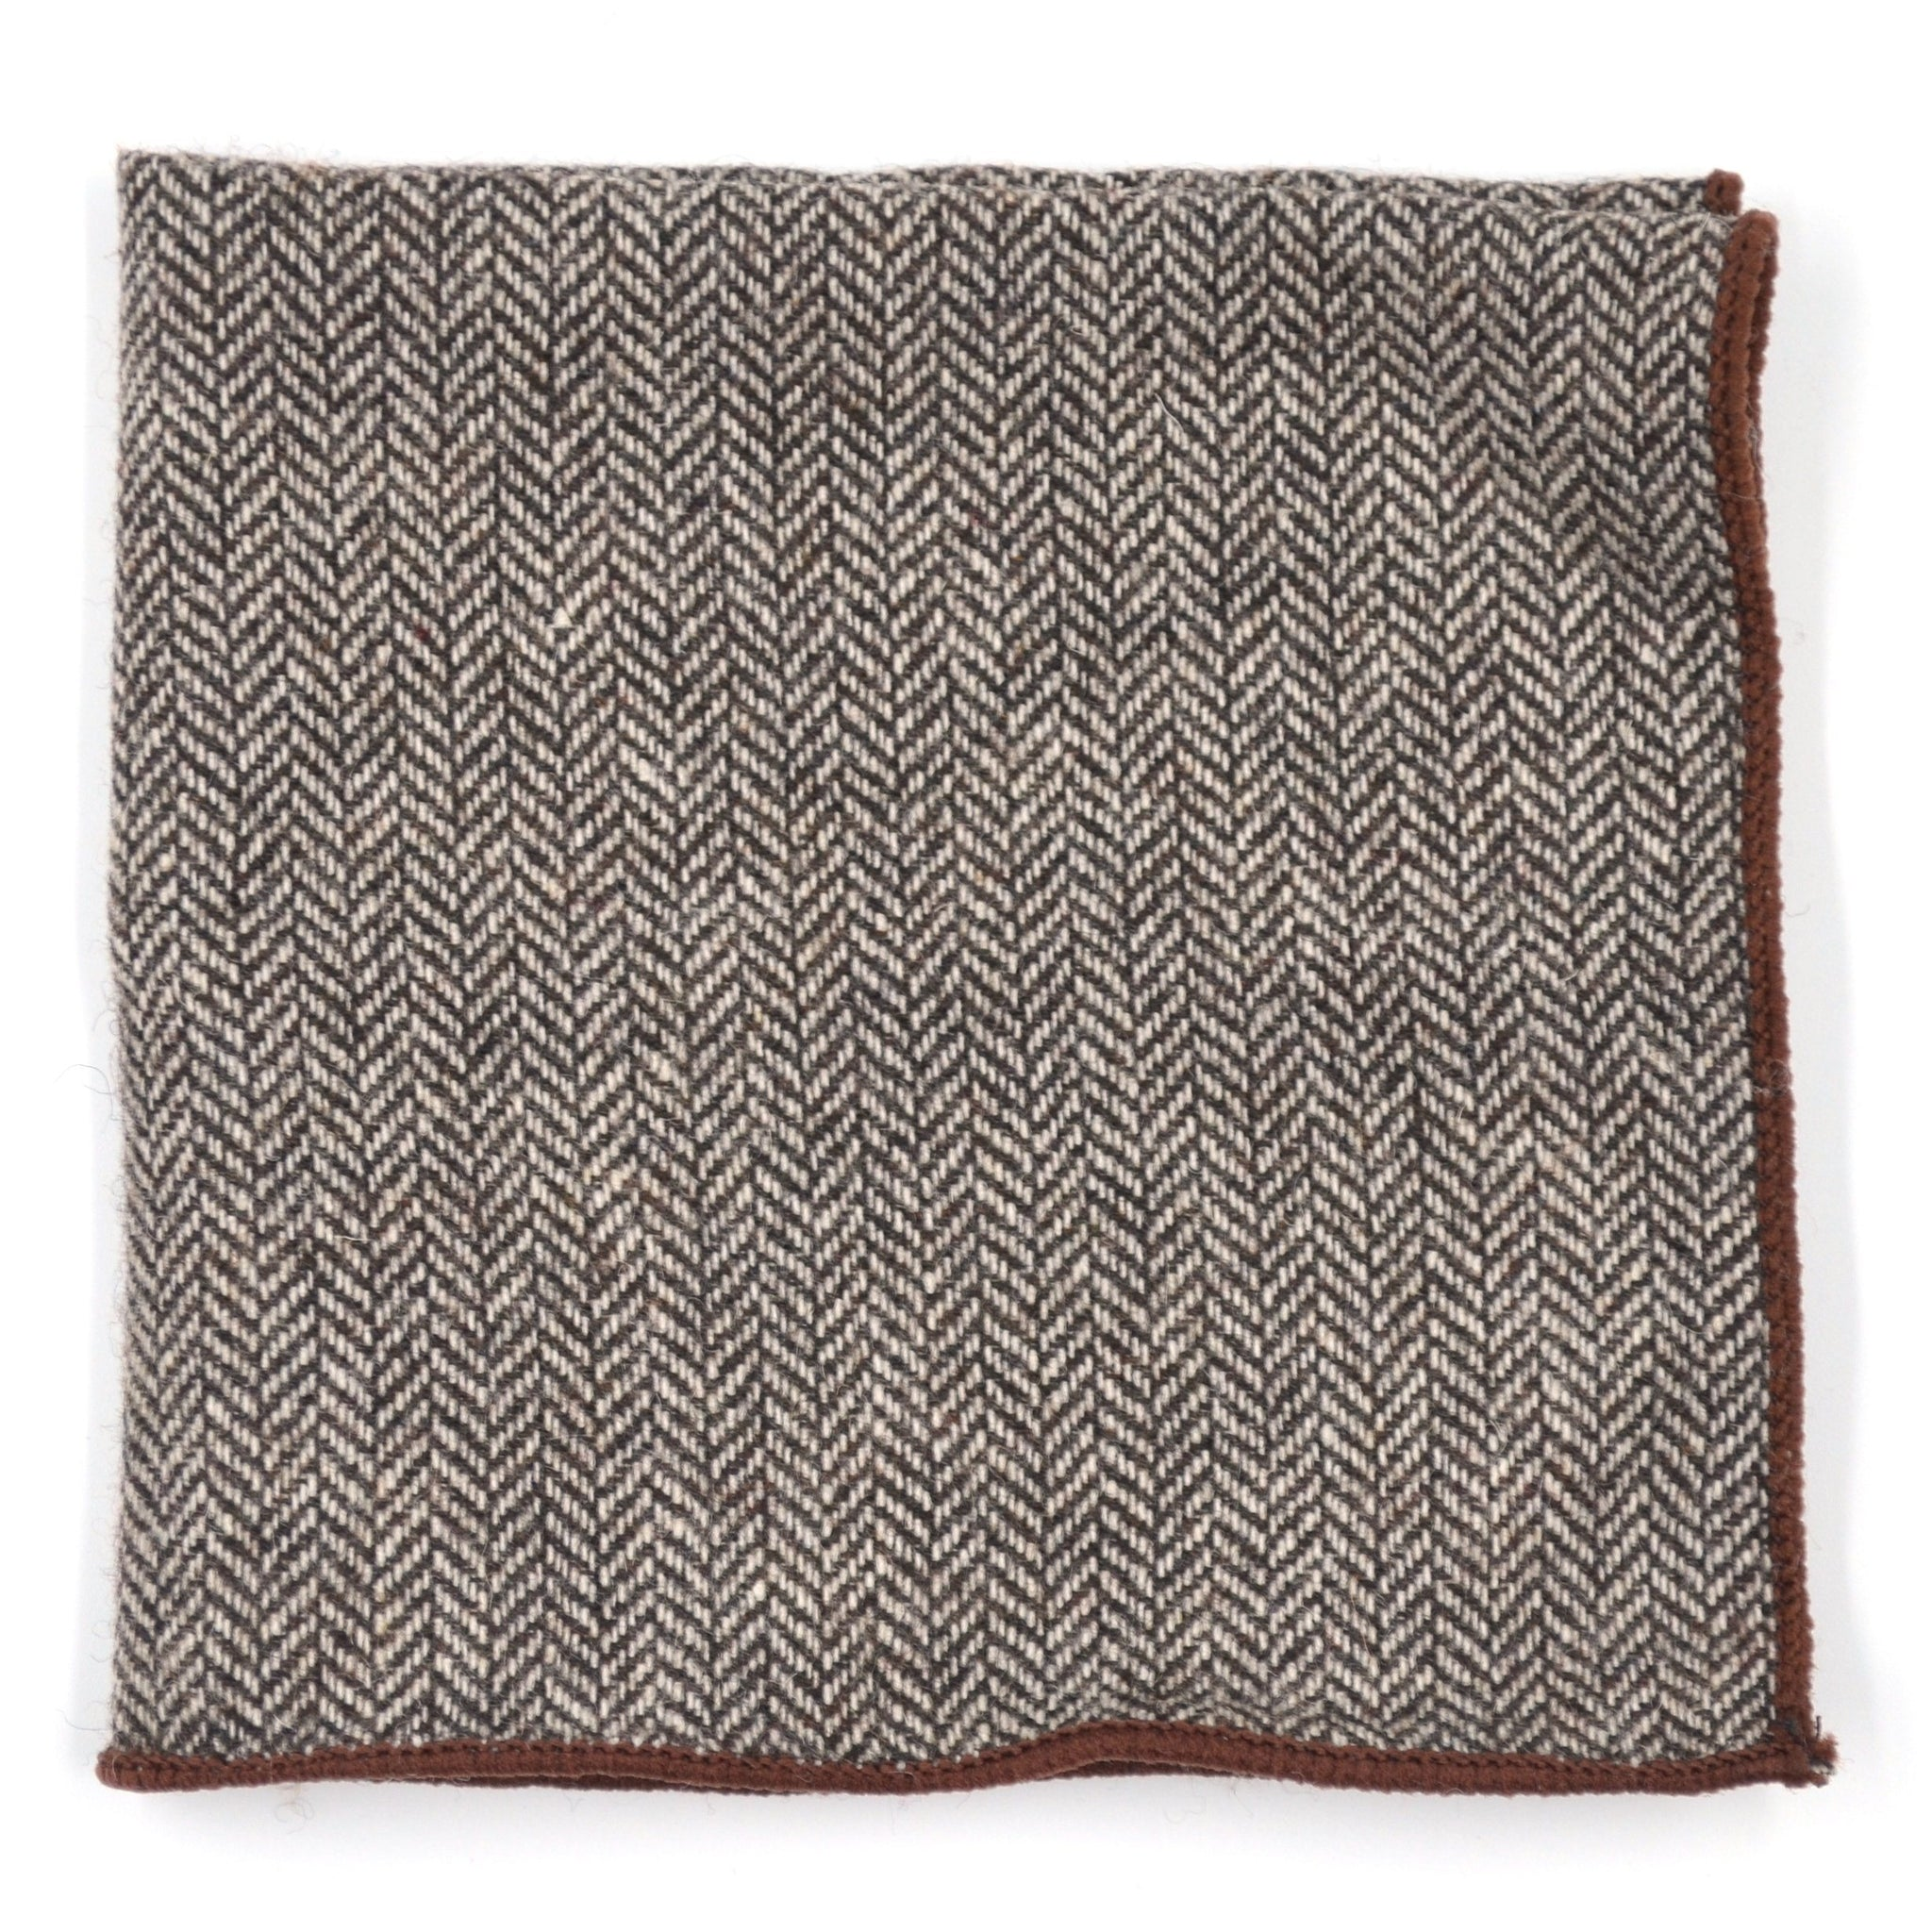 Pocket Square - Herringbone Brown Pocket Square